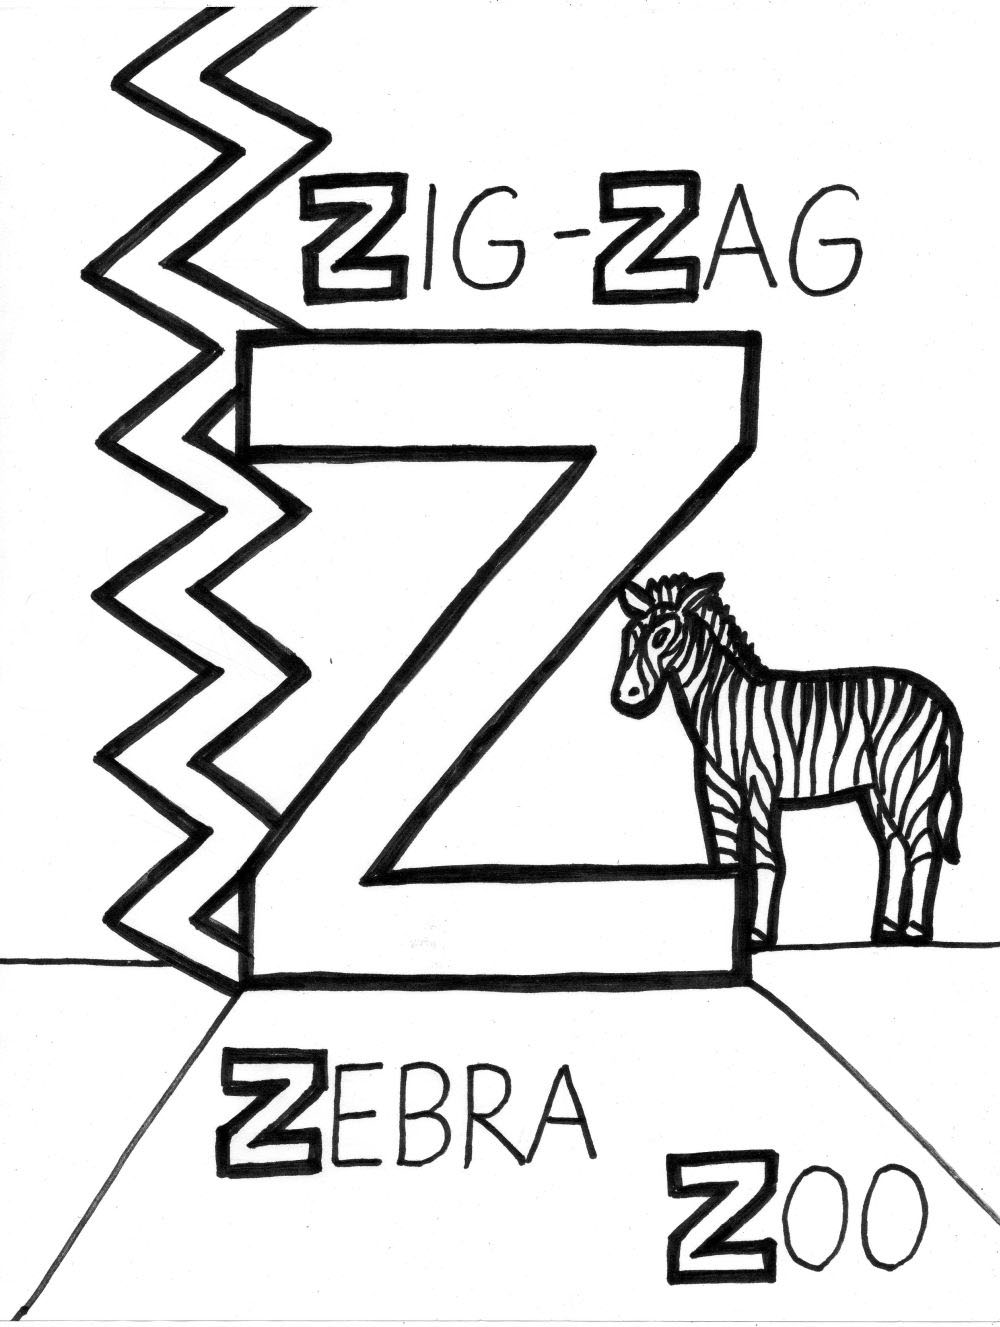 coloring pages letters - letter z coloring pages to download and print for free